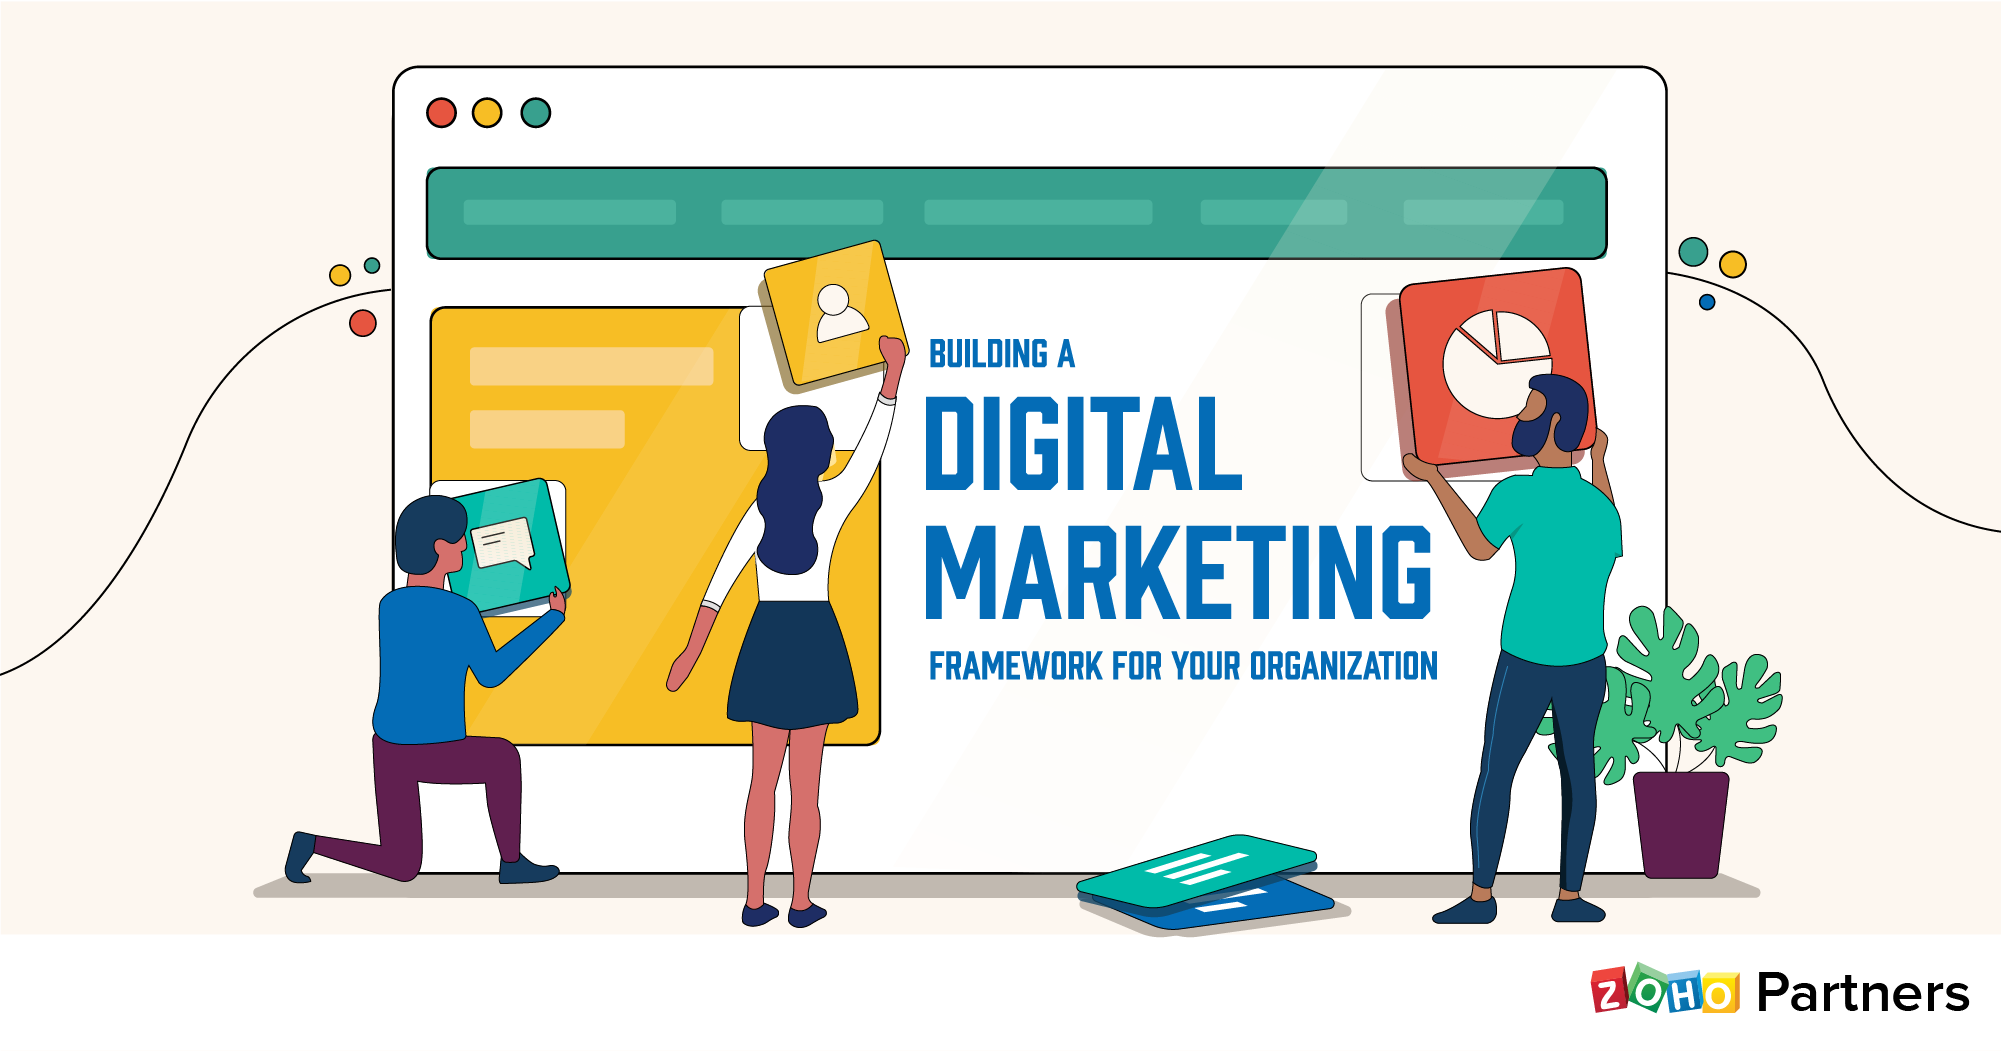 Building a digital marketing framework for your organization